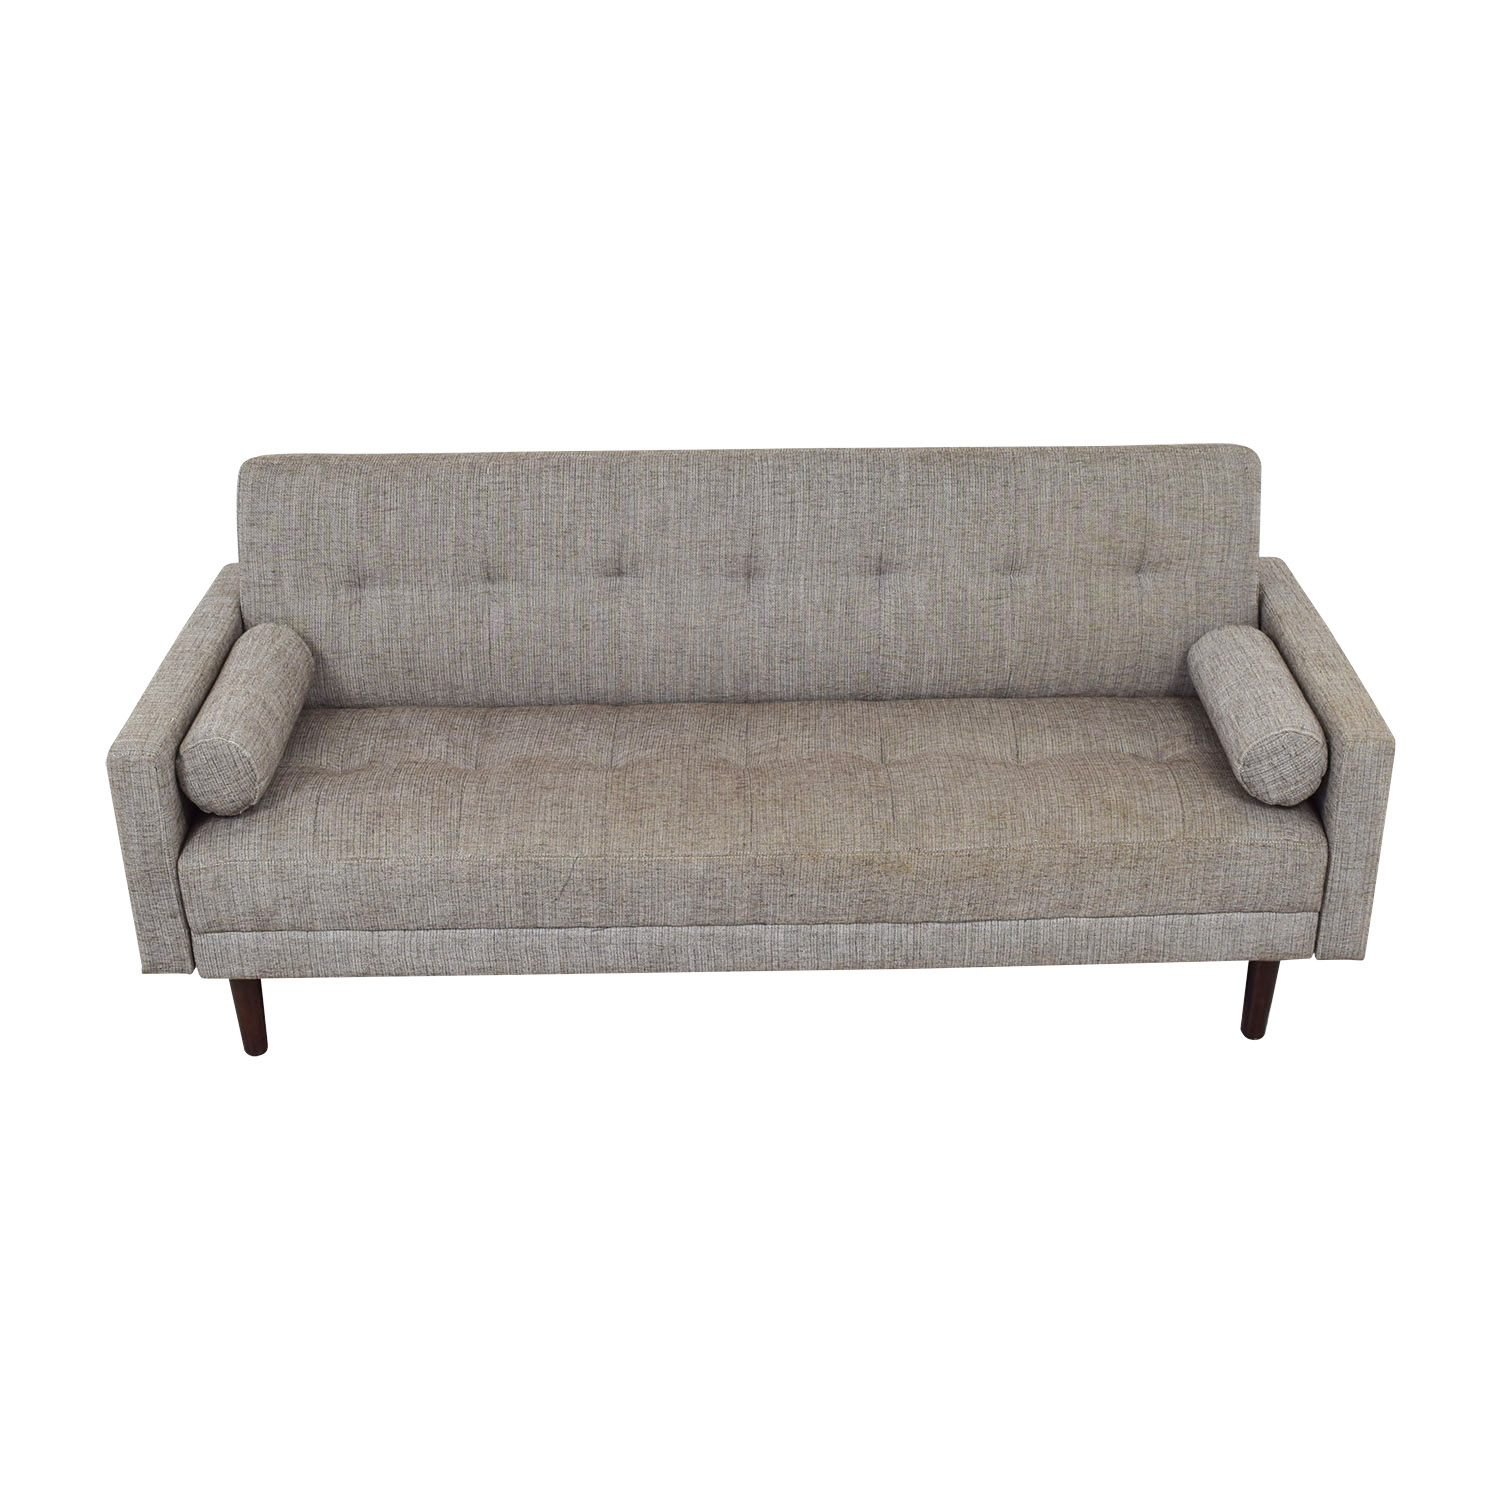 shop Urban Outfitters Grey Tufted Three-Cushion Convertible Sofa Urban Outfitters Sofas